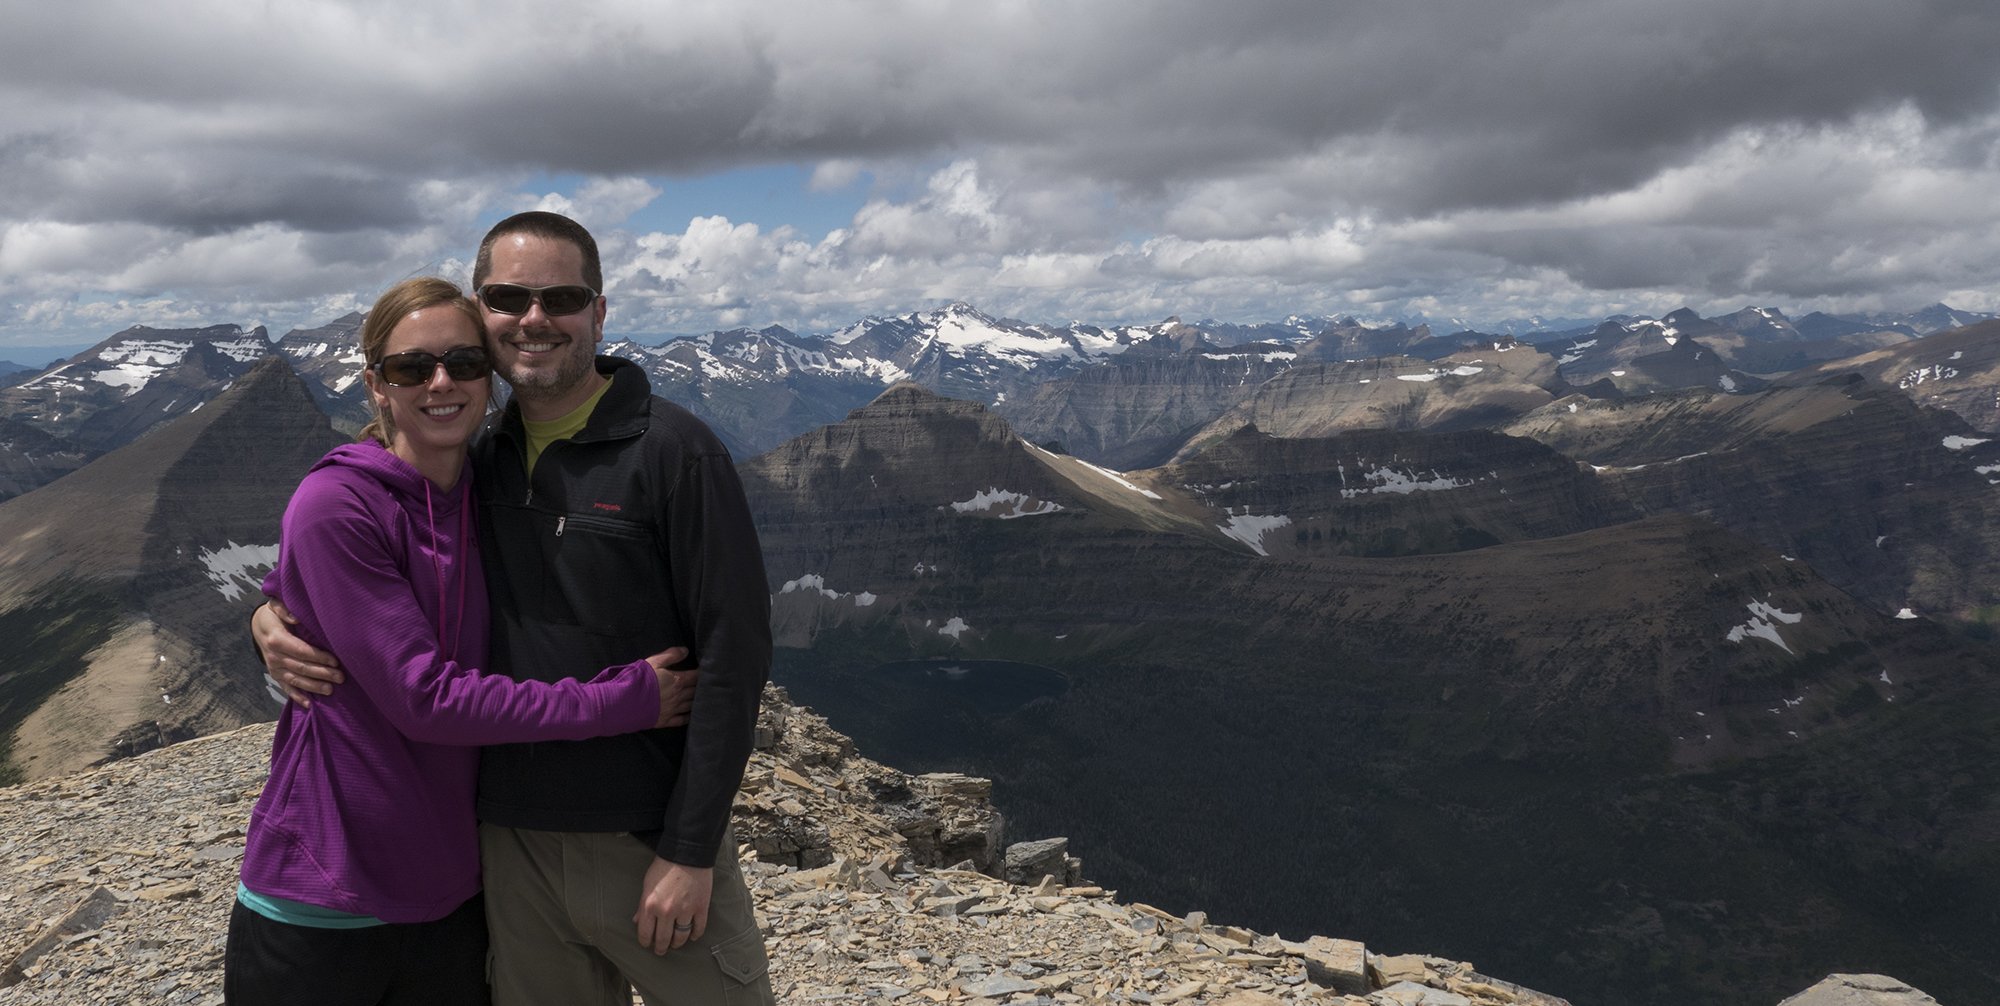 Jake and his wife Kristen on Rising Wolf Mountain in Glacier National Park